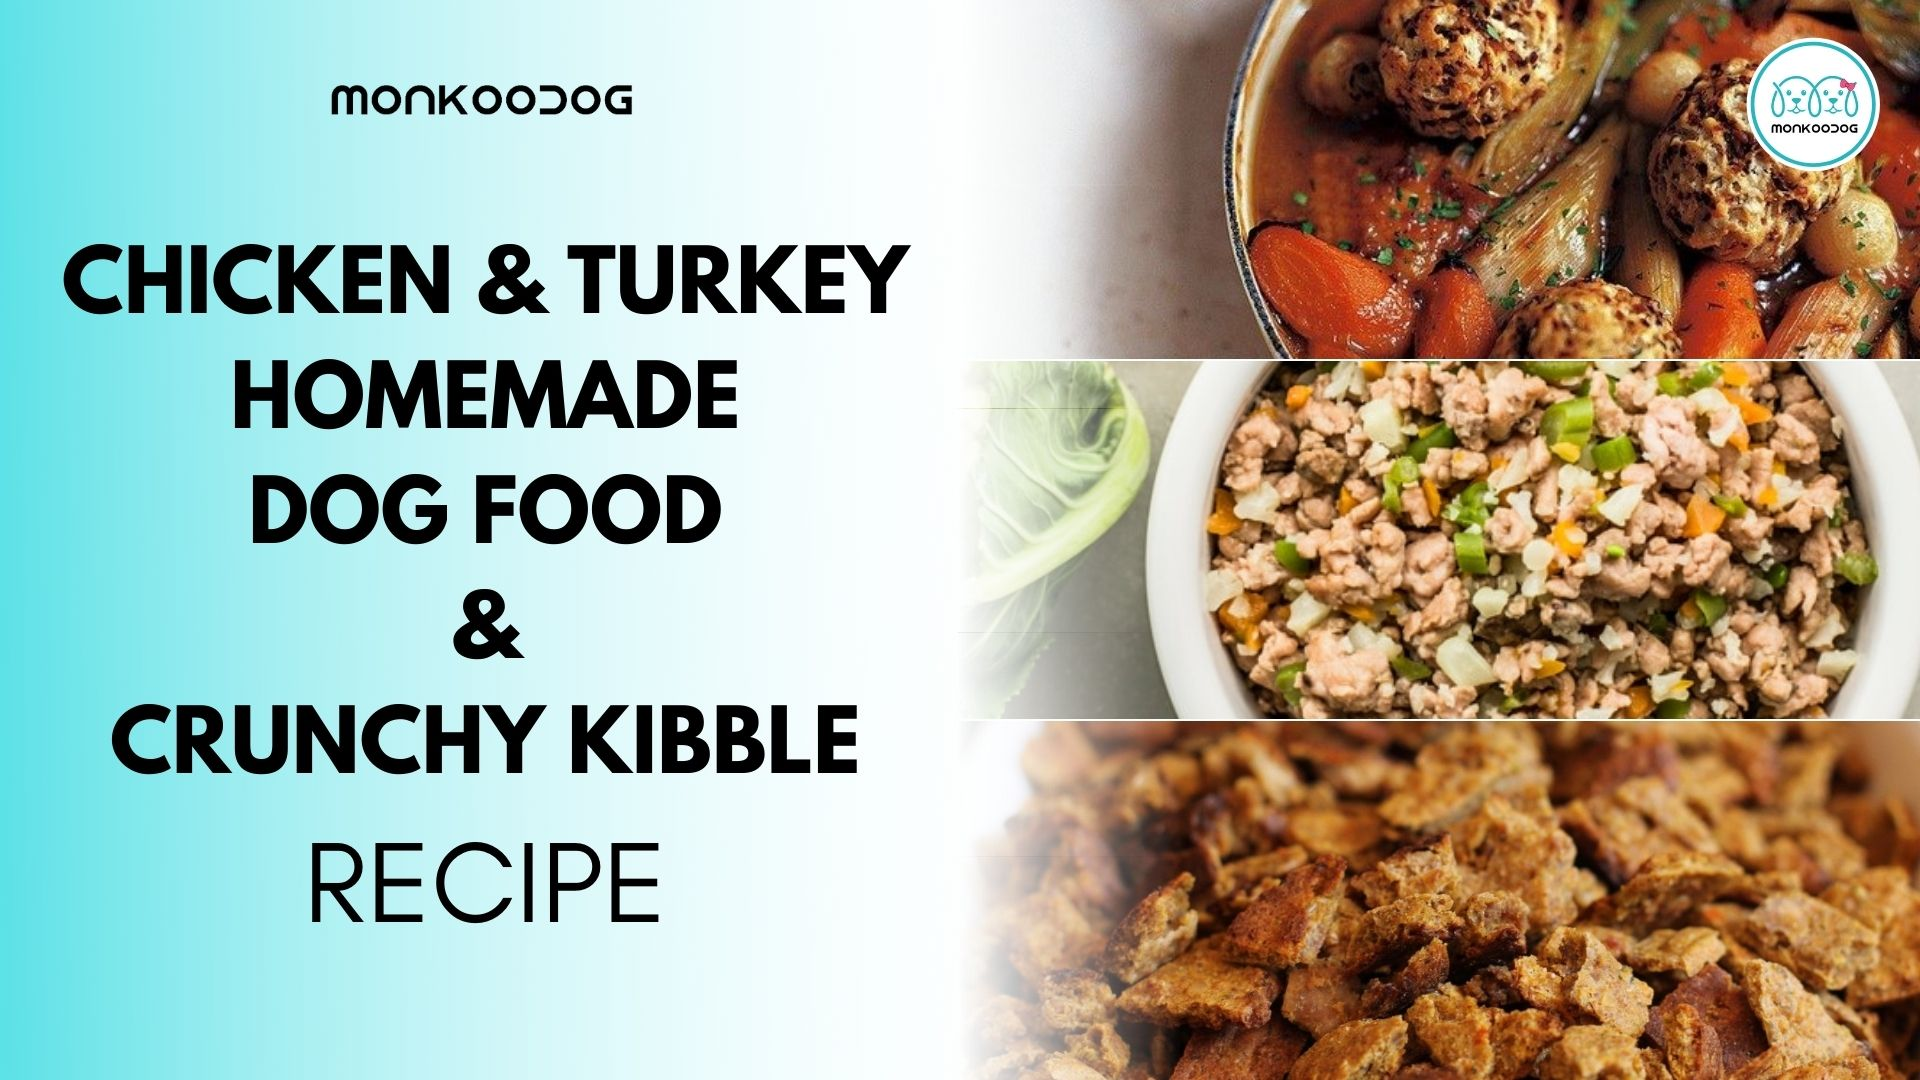 3 Easy Diy Chicken & turkey homemade dog food & crunchy kibble dog food recipe